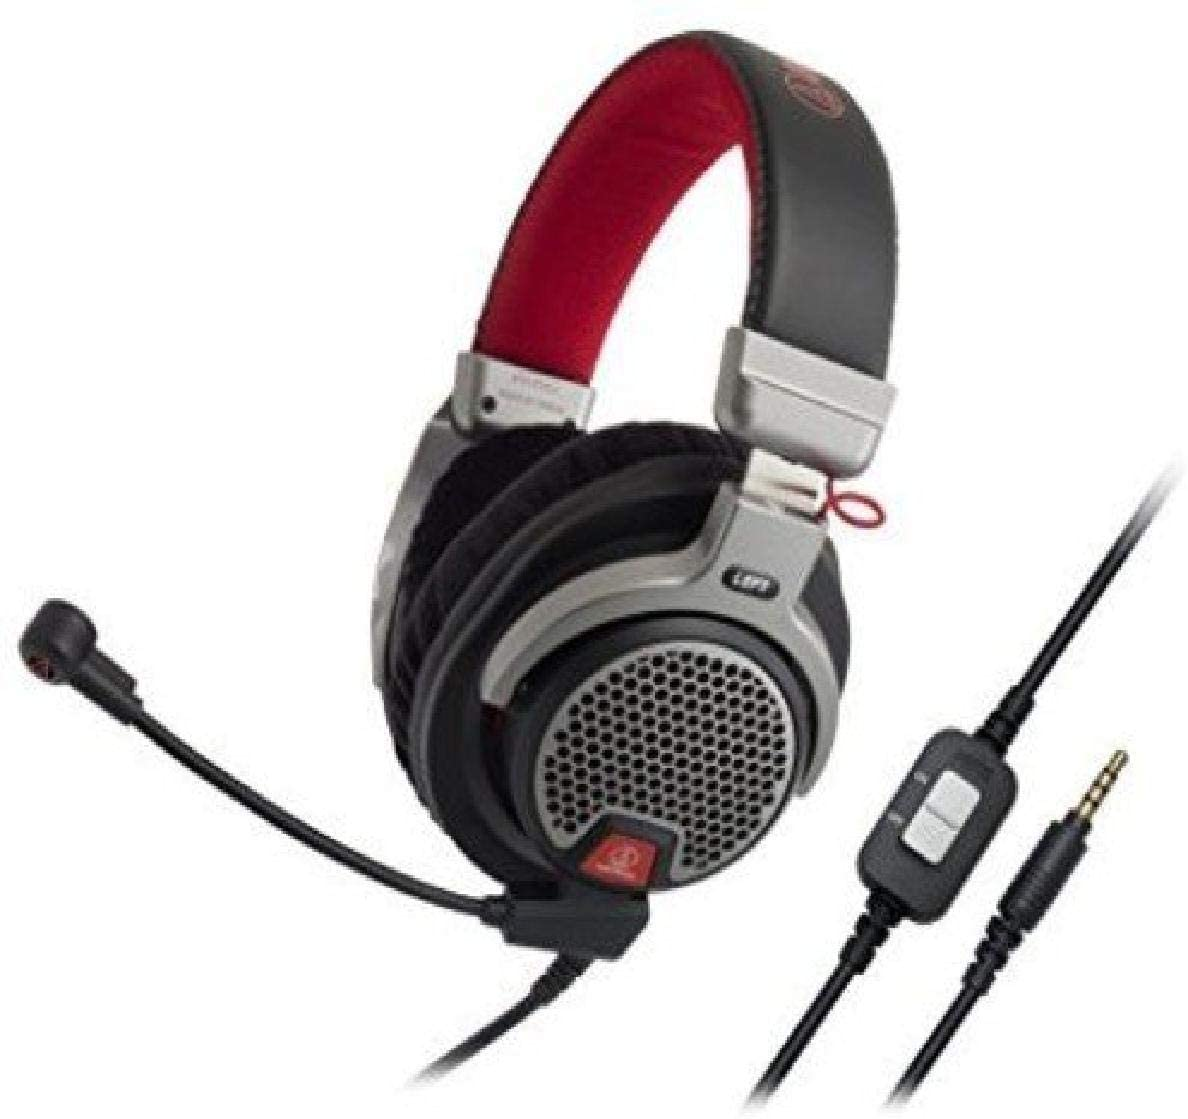 Audio Technica ATHPDG1 Open-Air Premium Gaming Headset, Red/Gray/Black